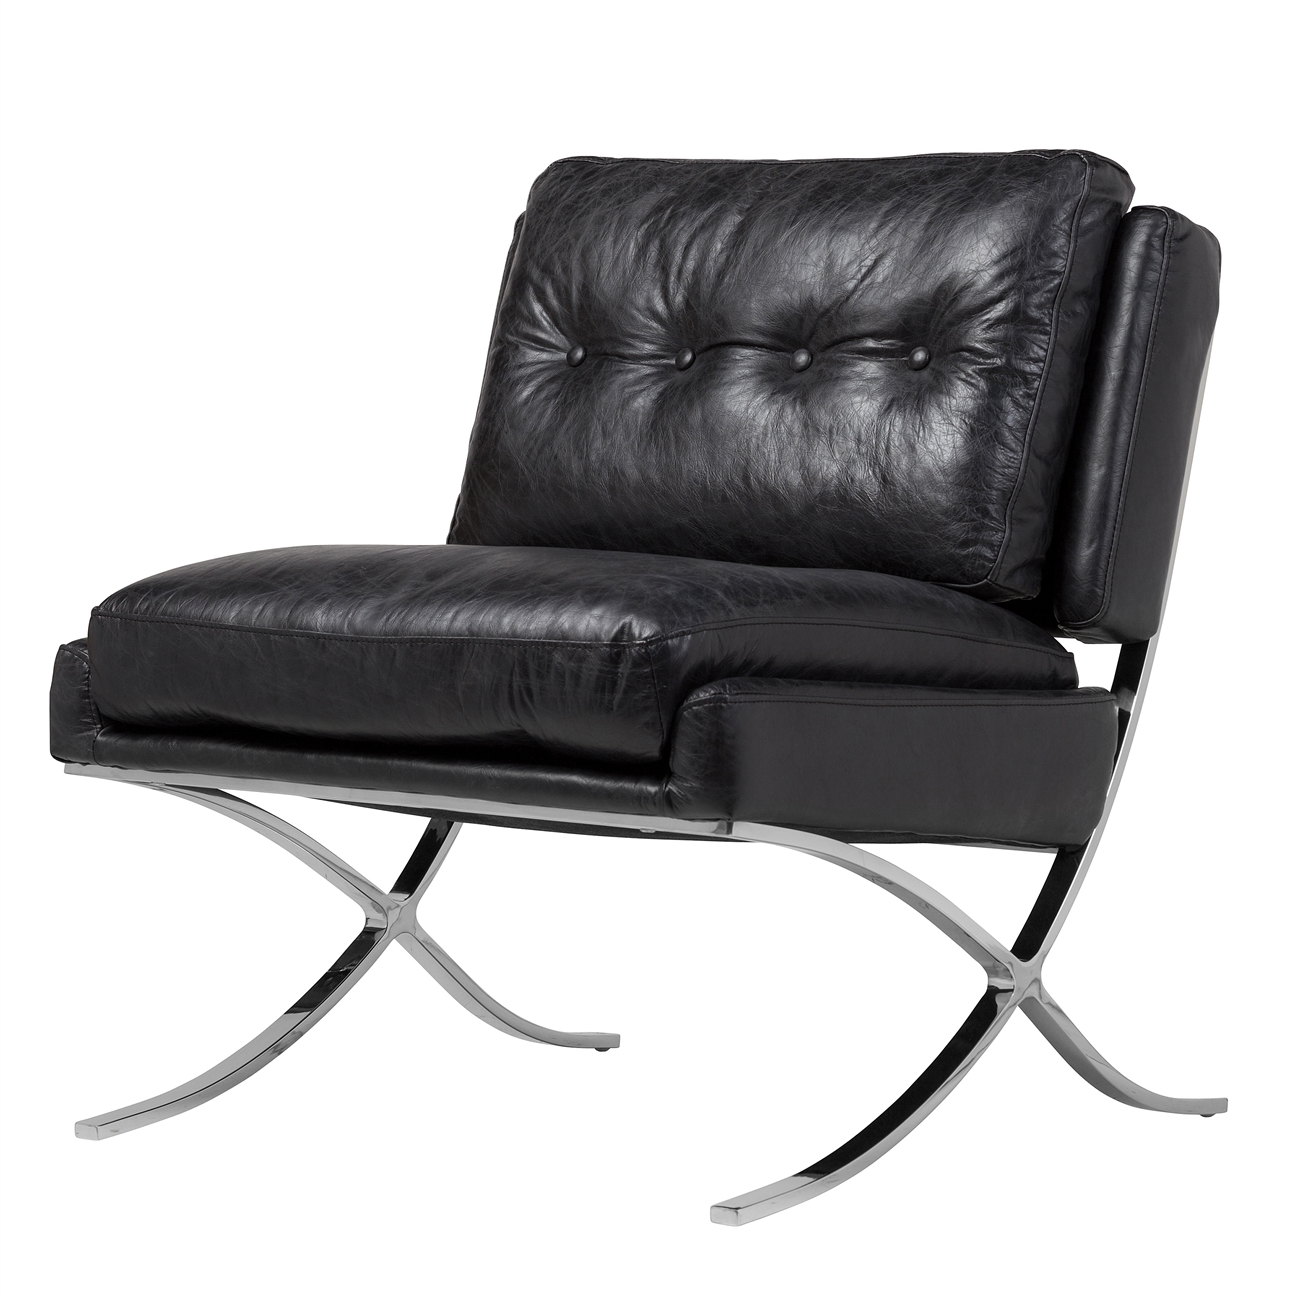 Marvelous Capetown Occasional Chair In Black Leather Ocoug Best Dining Table And Chair Ideas Images Ocougorg